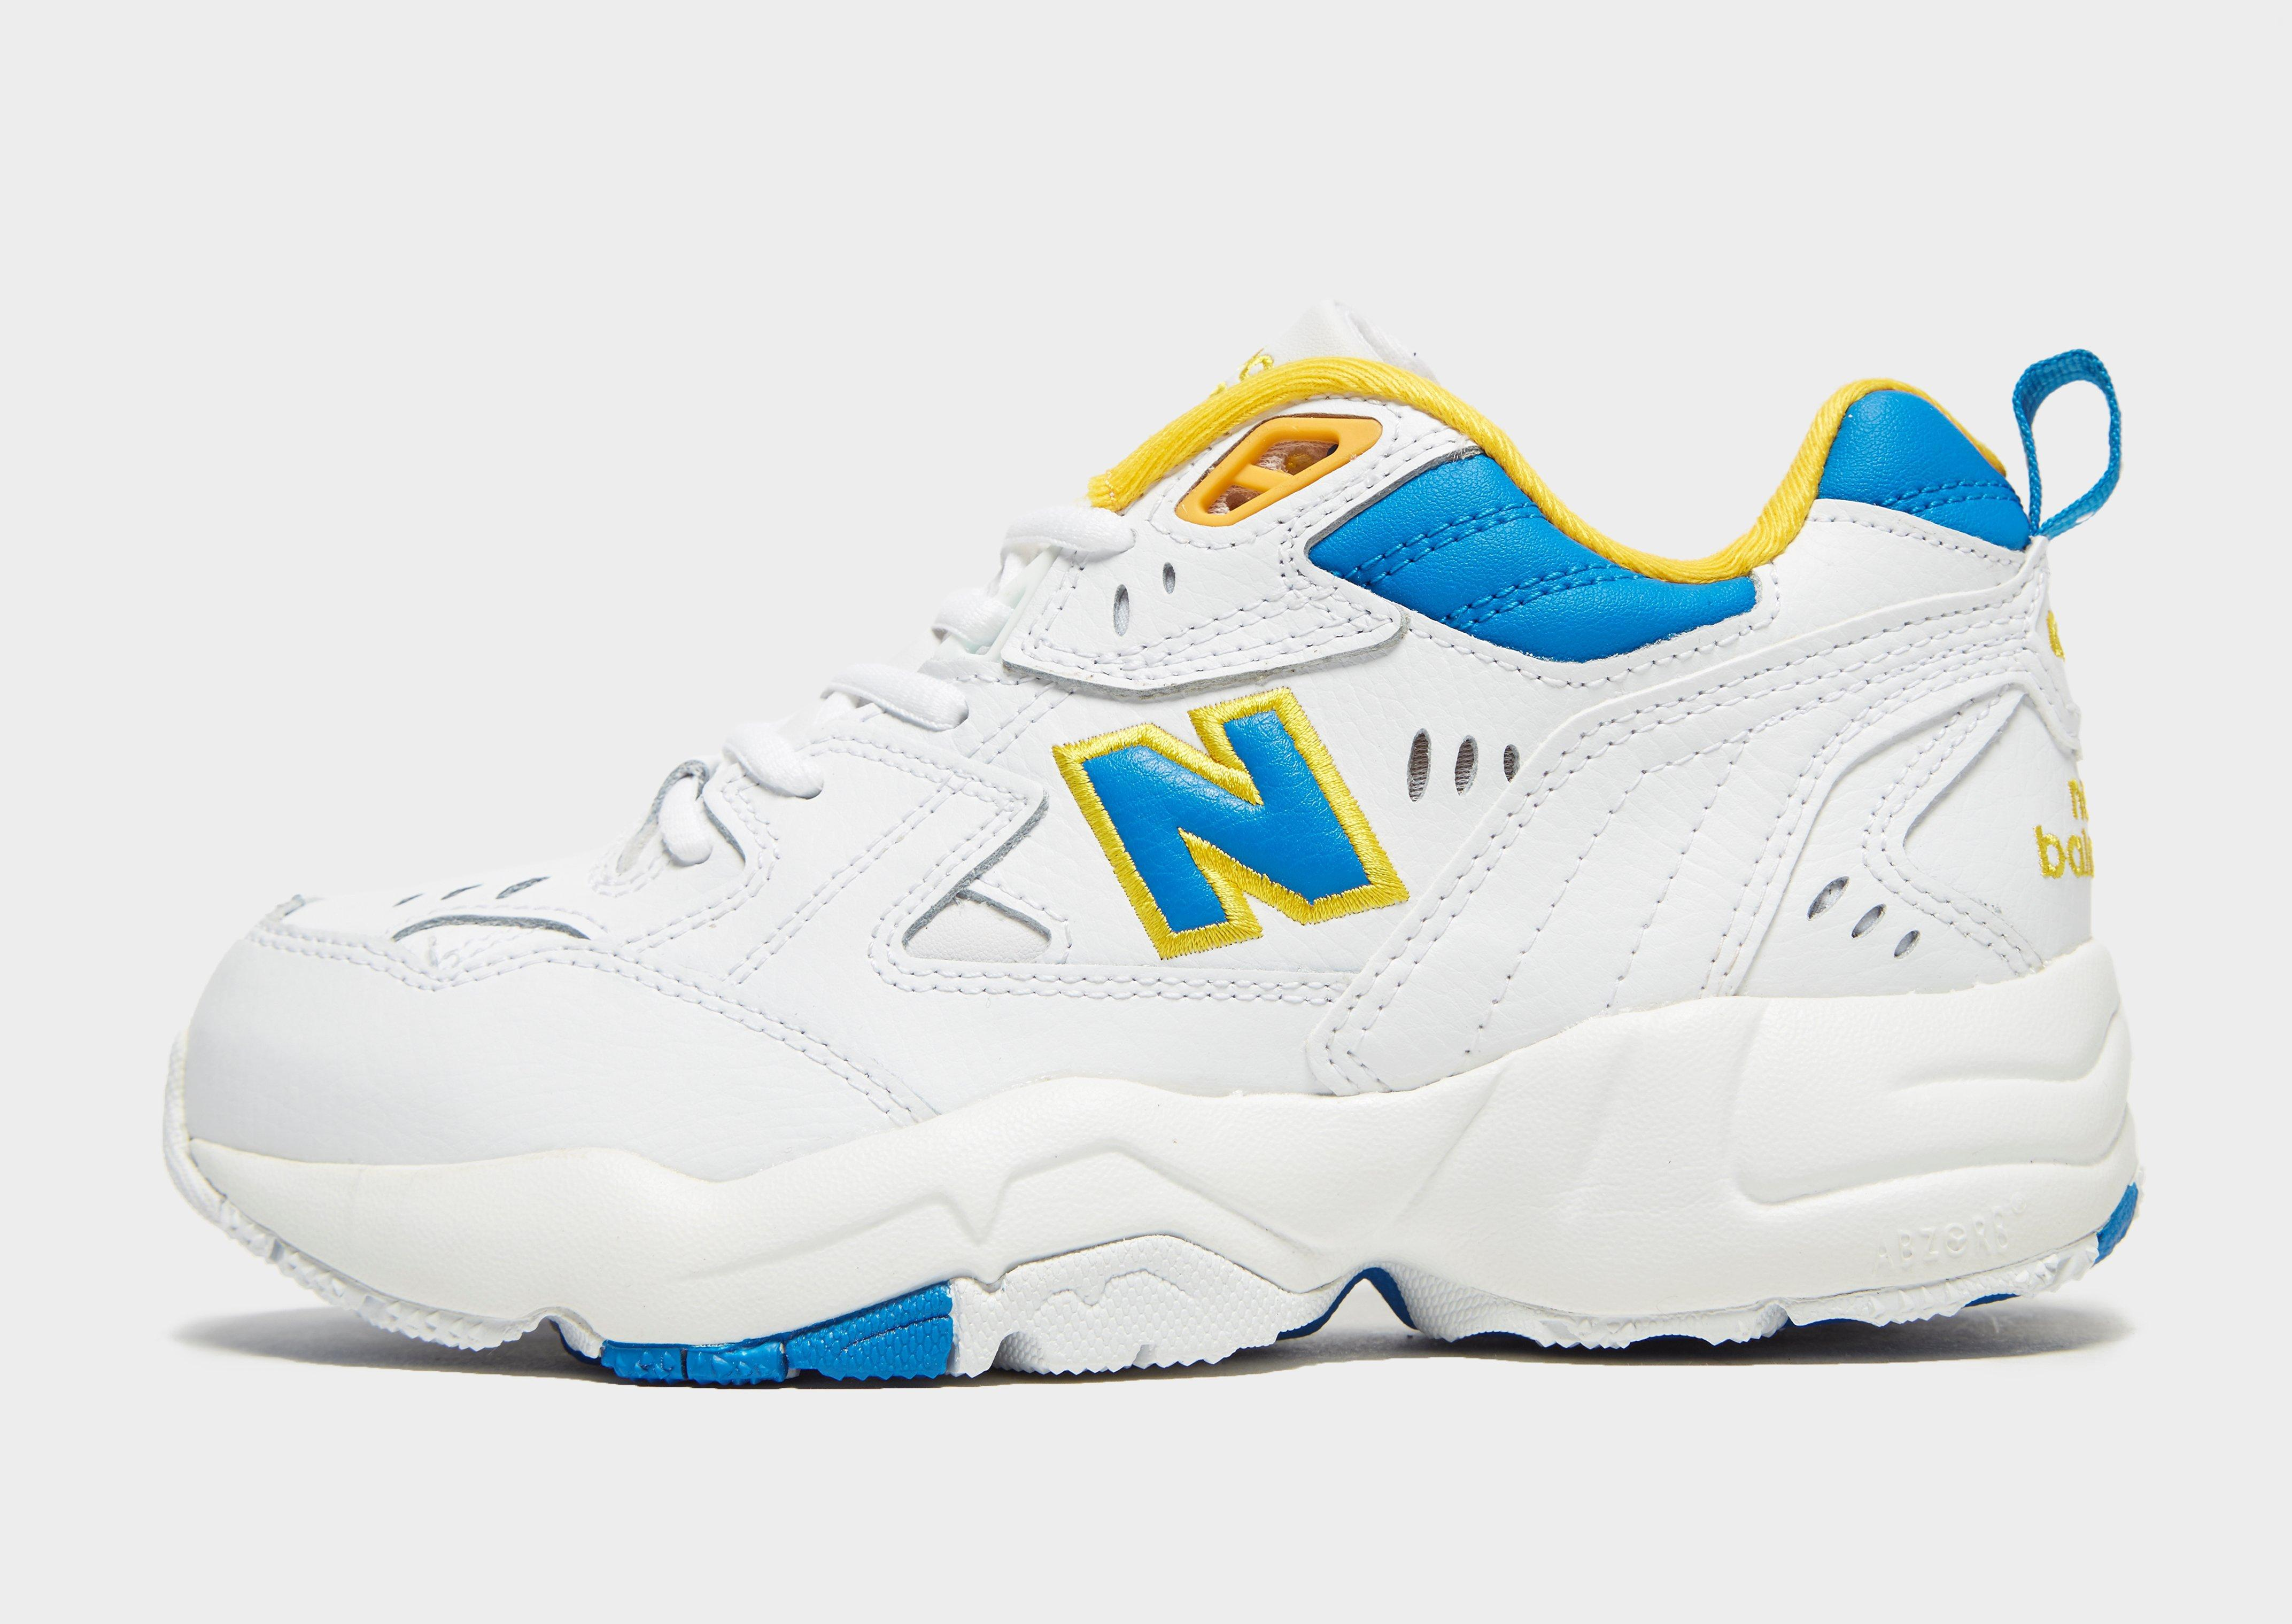 New Balance Leather 608 in White/Blue/Yellow (Blue) - Lyst